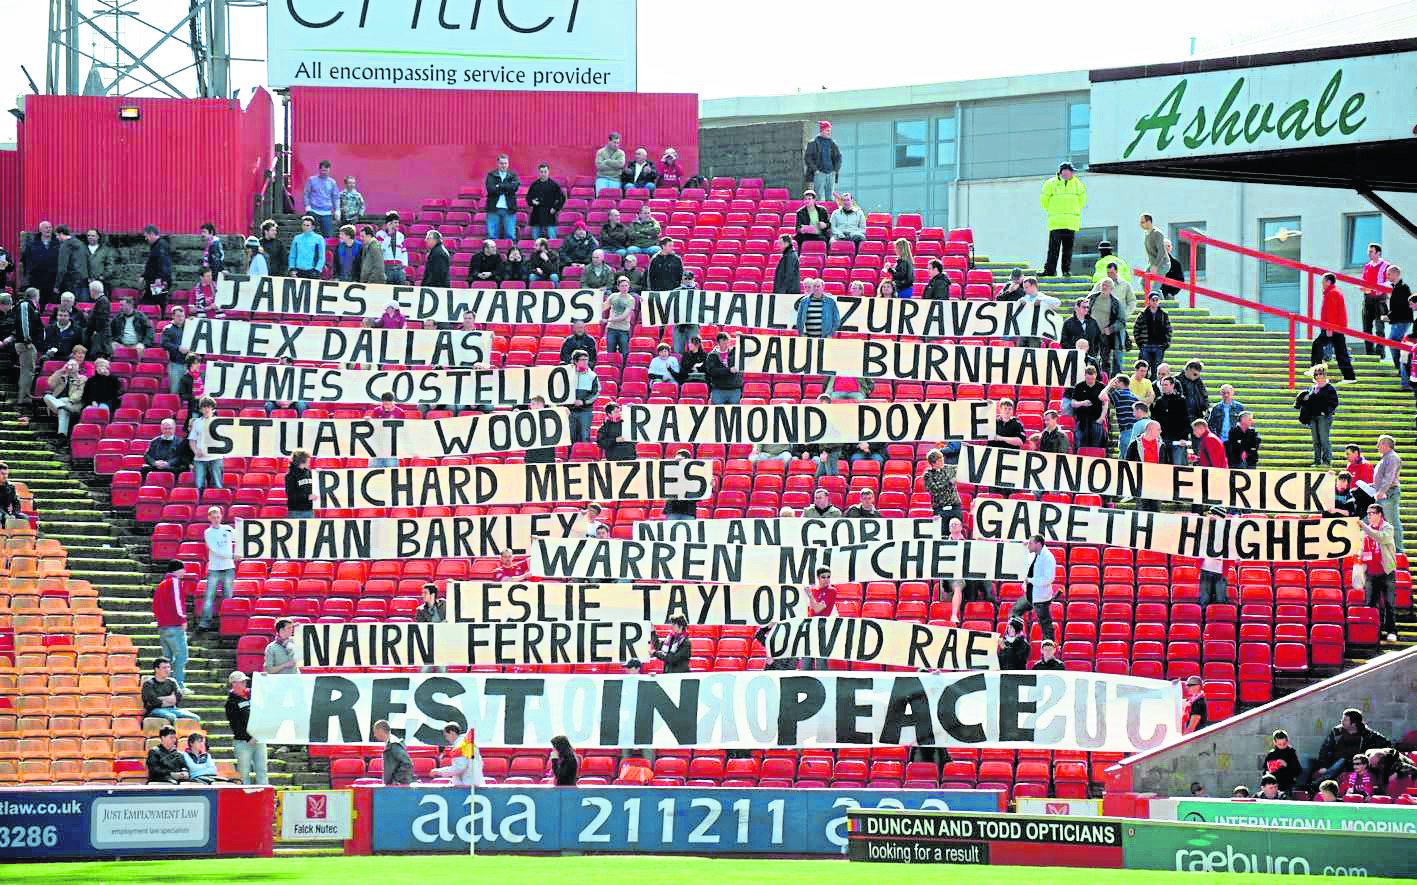 Tribute to the crew and passengers of the Super Puma crash before the game against Inverness Caley Thistle at Pittodrie.